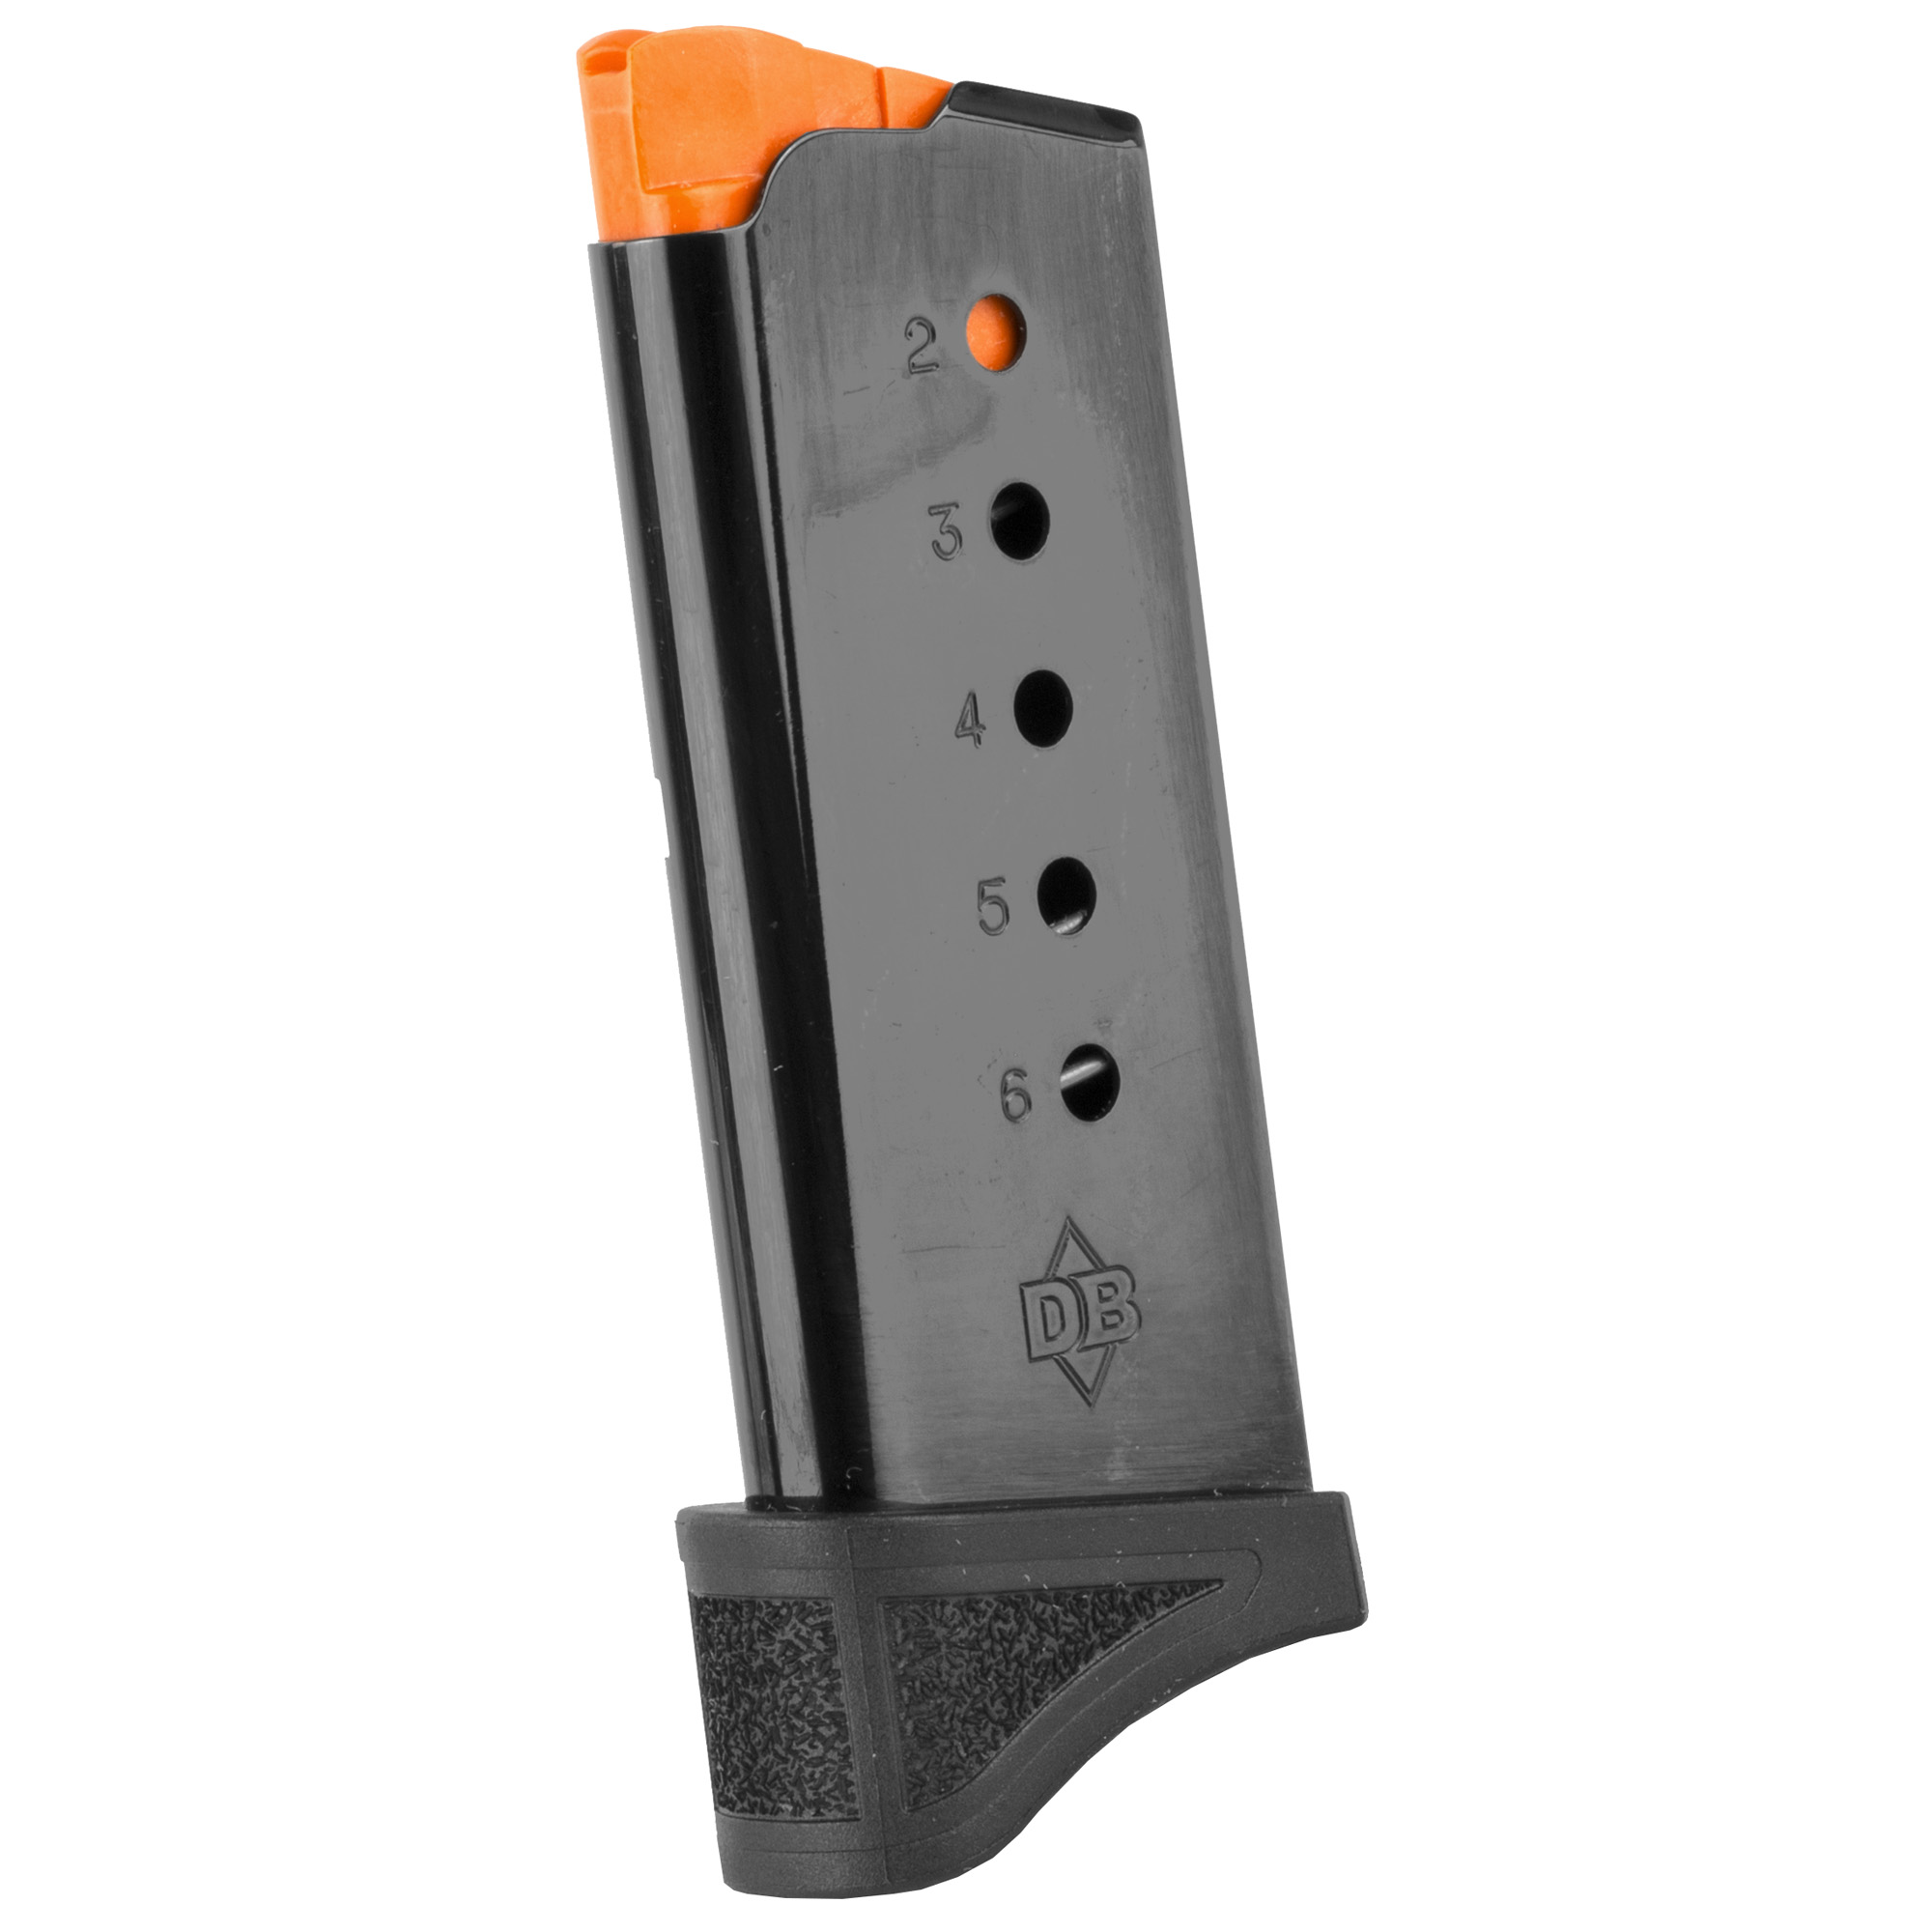 This magazine fits the DB9 Gen 4 and holds 6 rounds of 9mm ammunition. It features a metal alloy body and is made using the same manufacturing and materials as the original equipment magazines